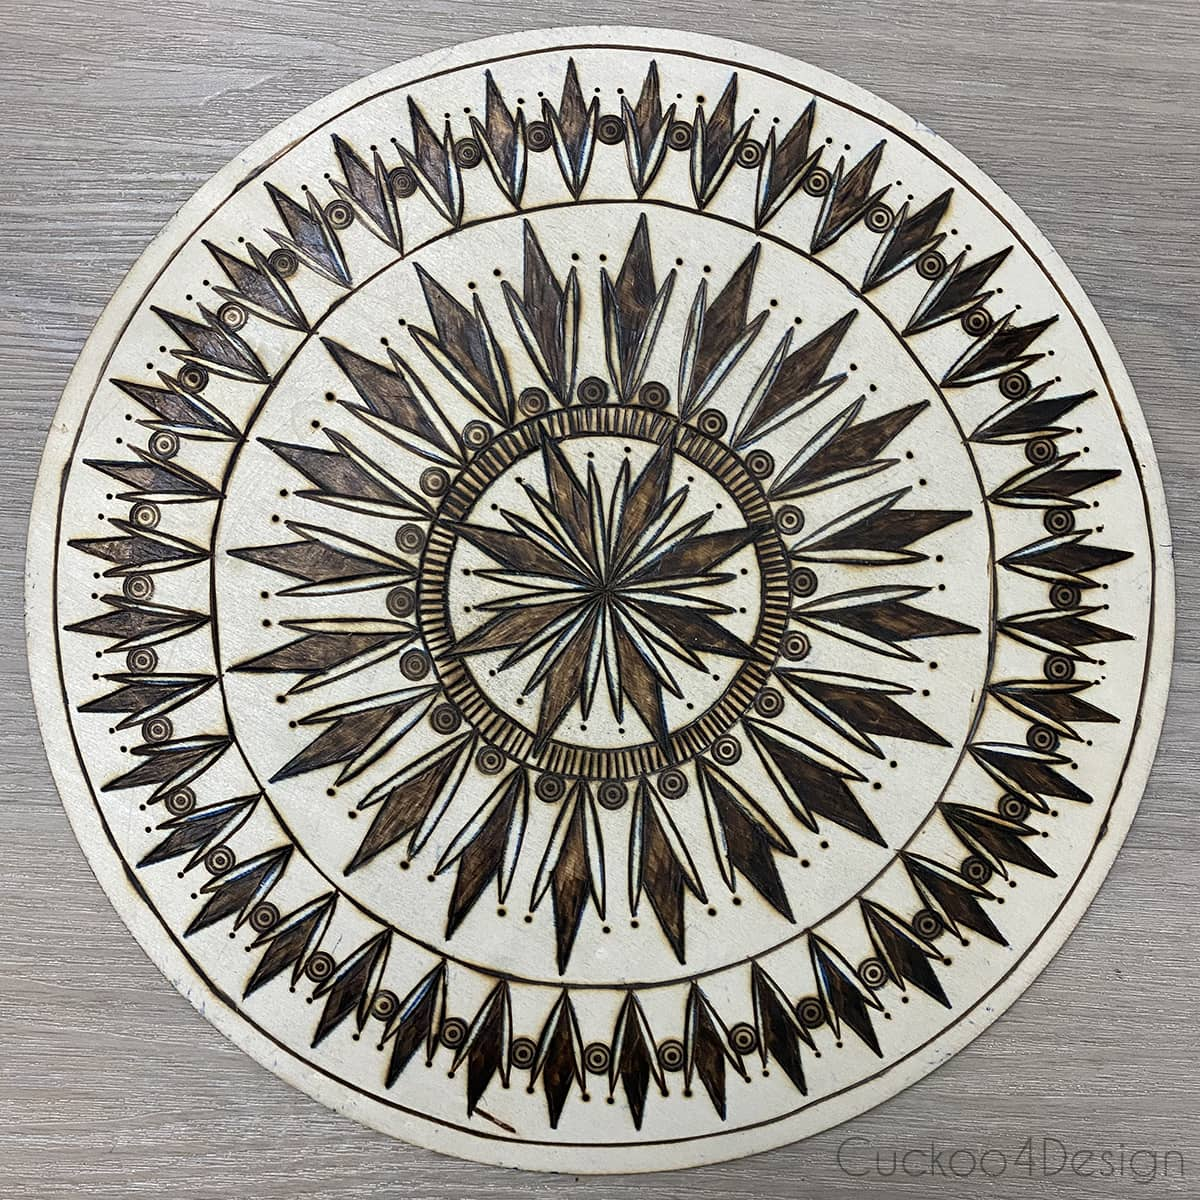 Structure mandala with straight lines and dark wood shapes